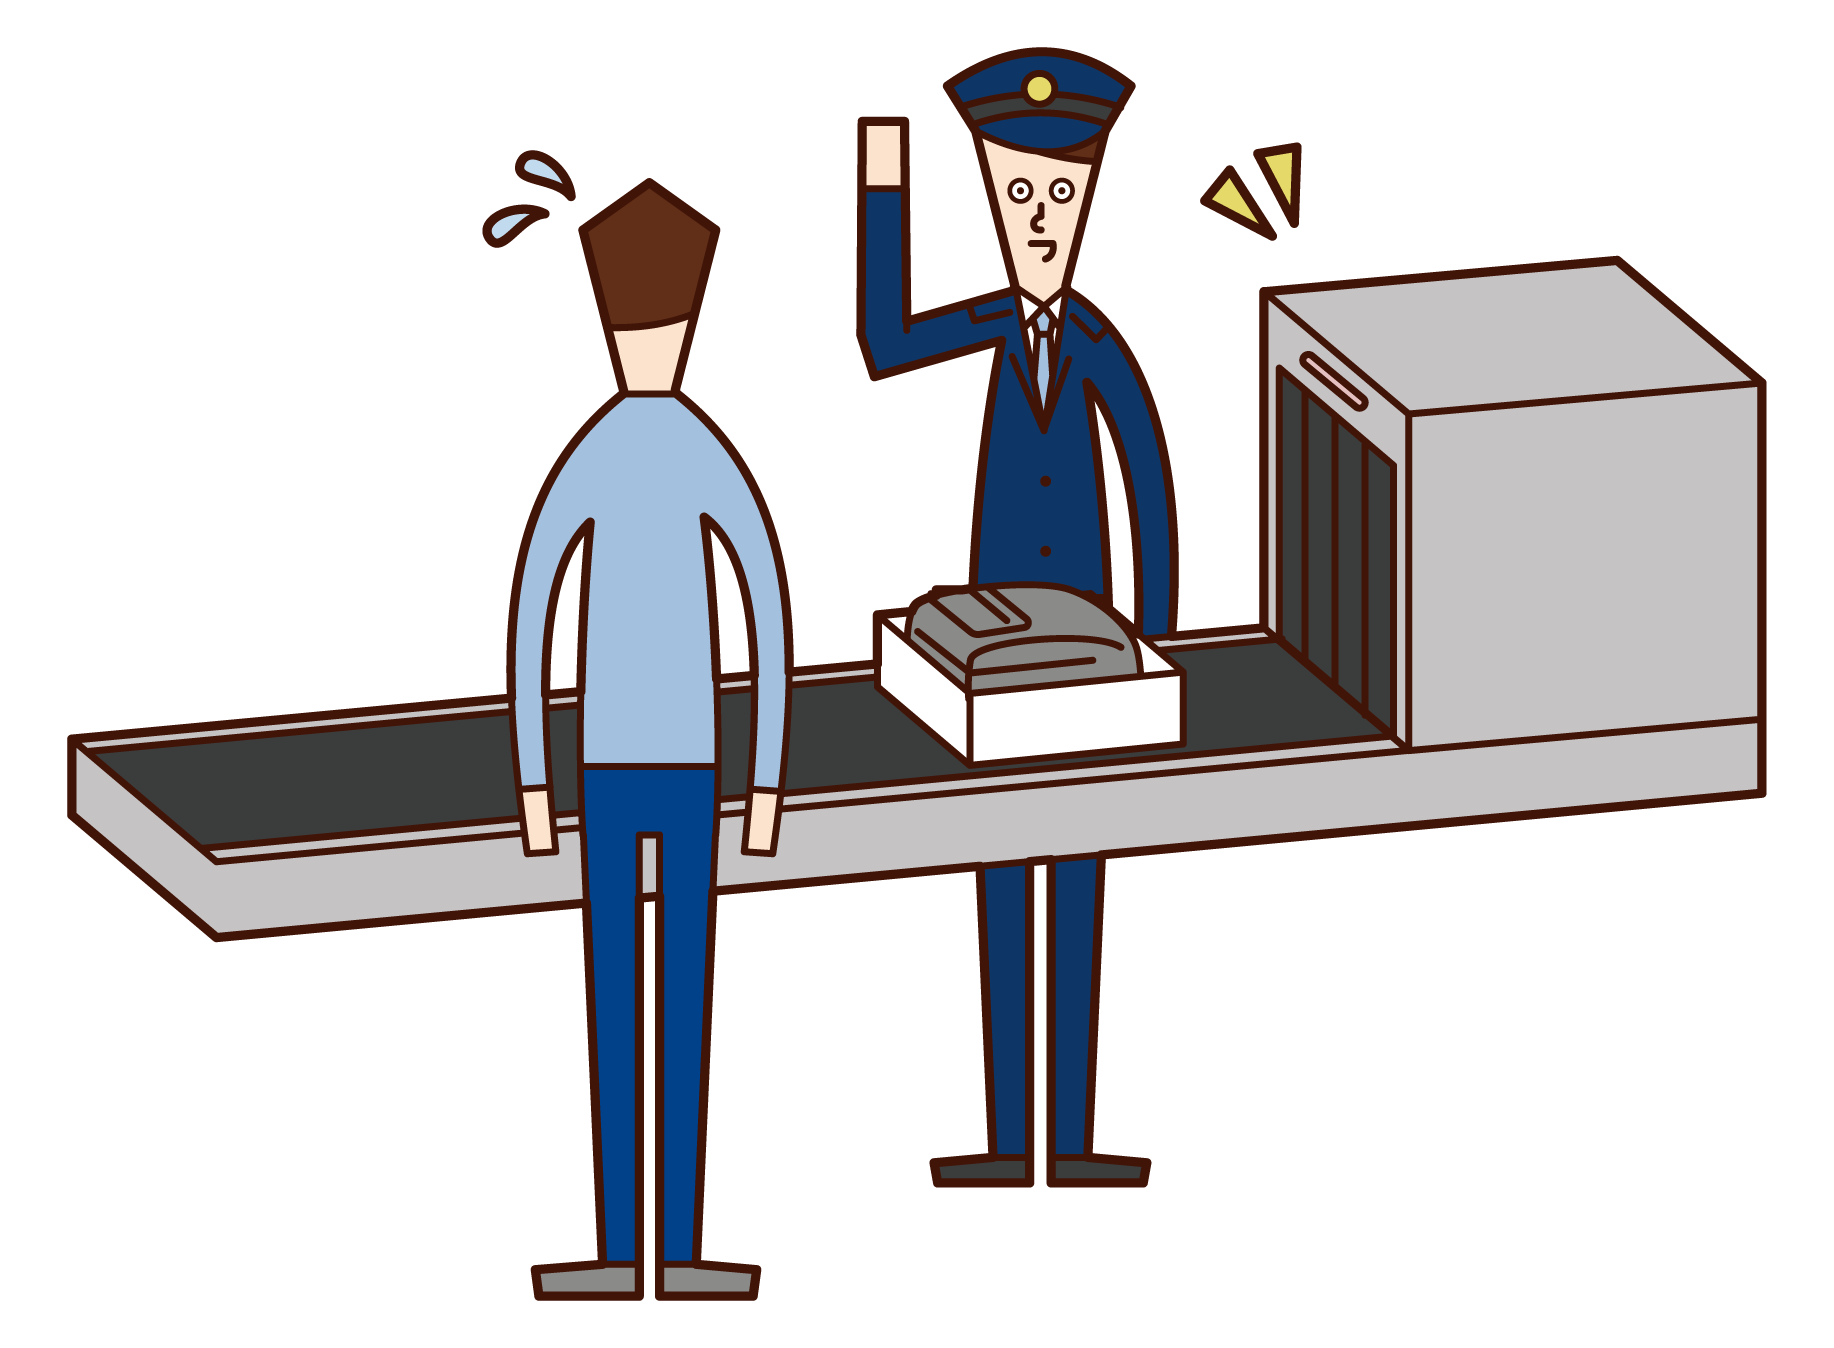 Illustration of a duty official (male) at the airport